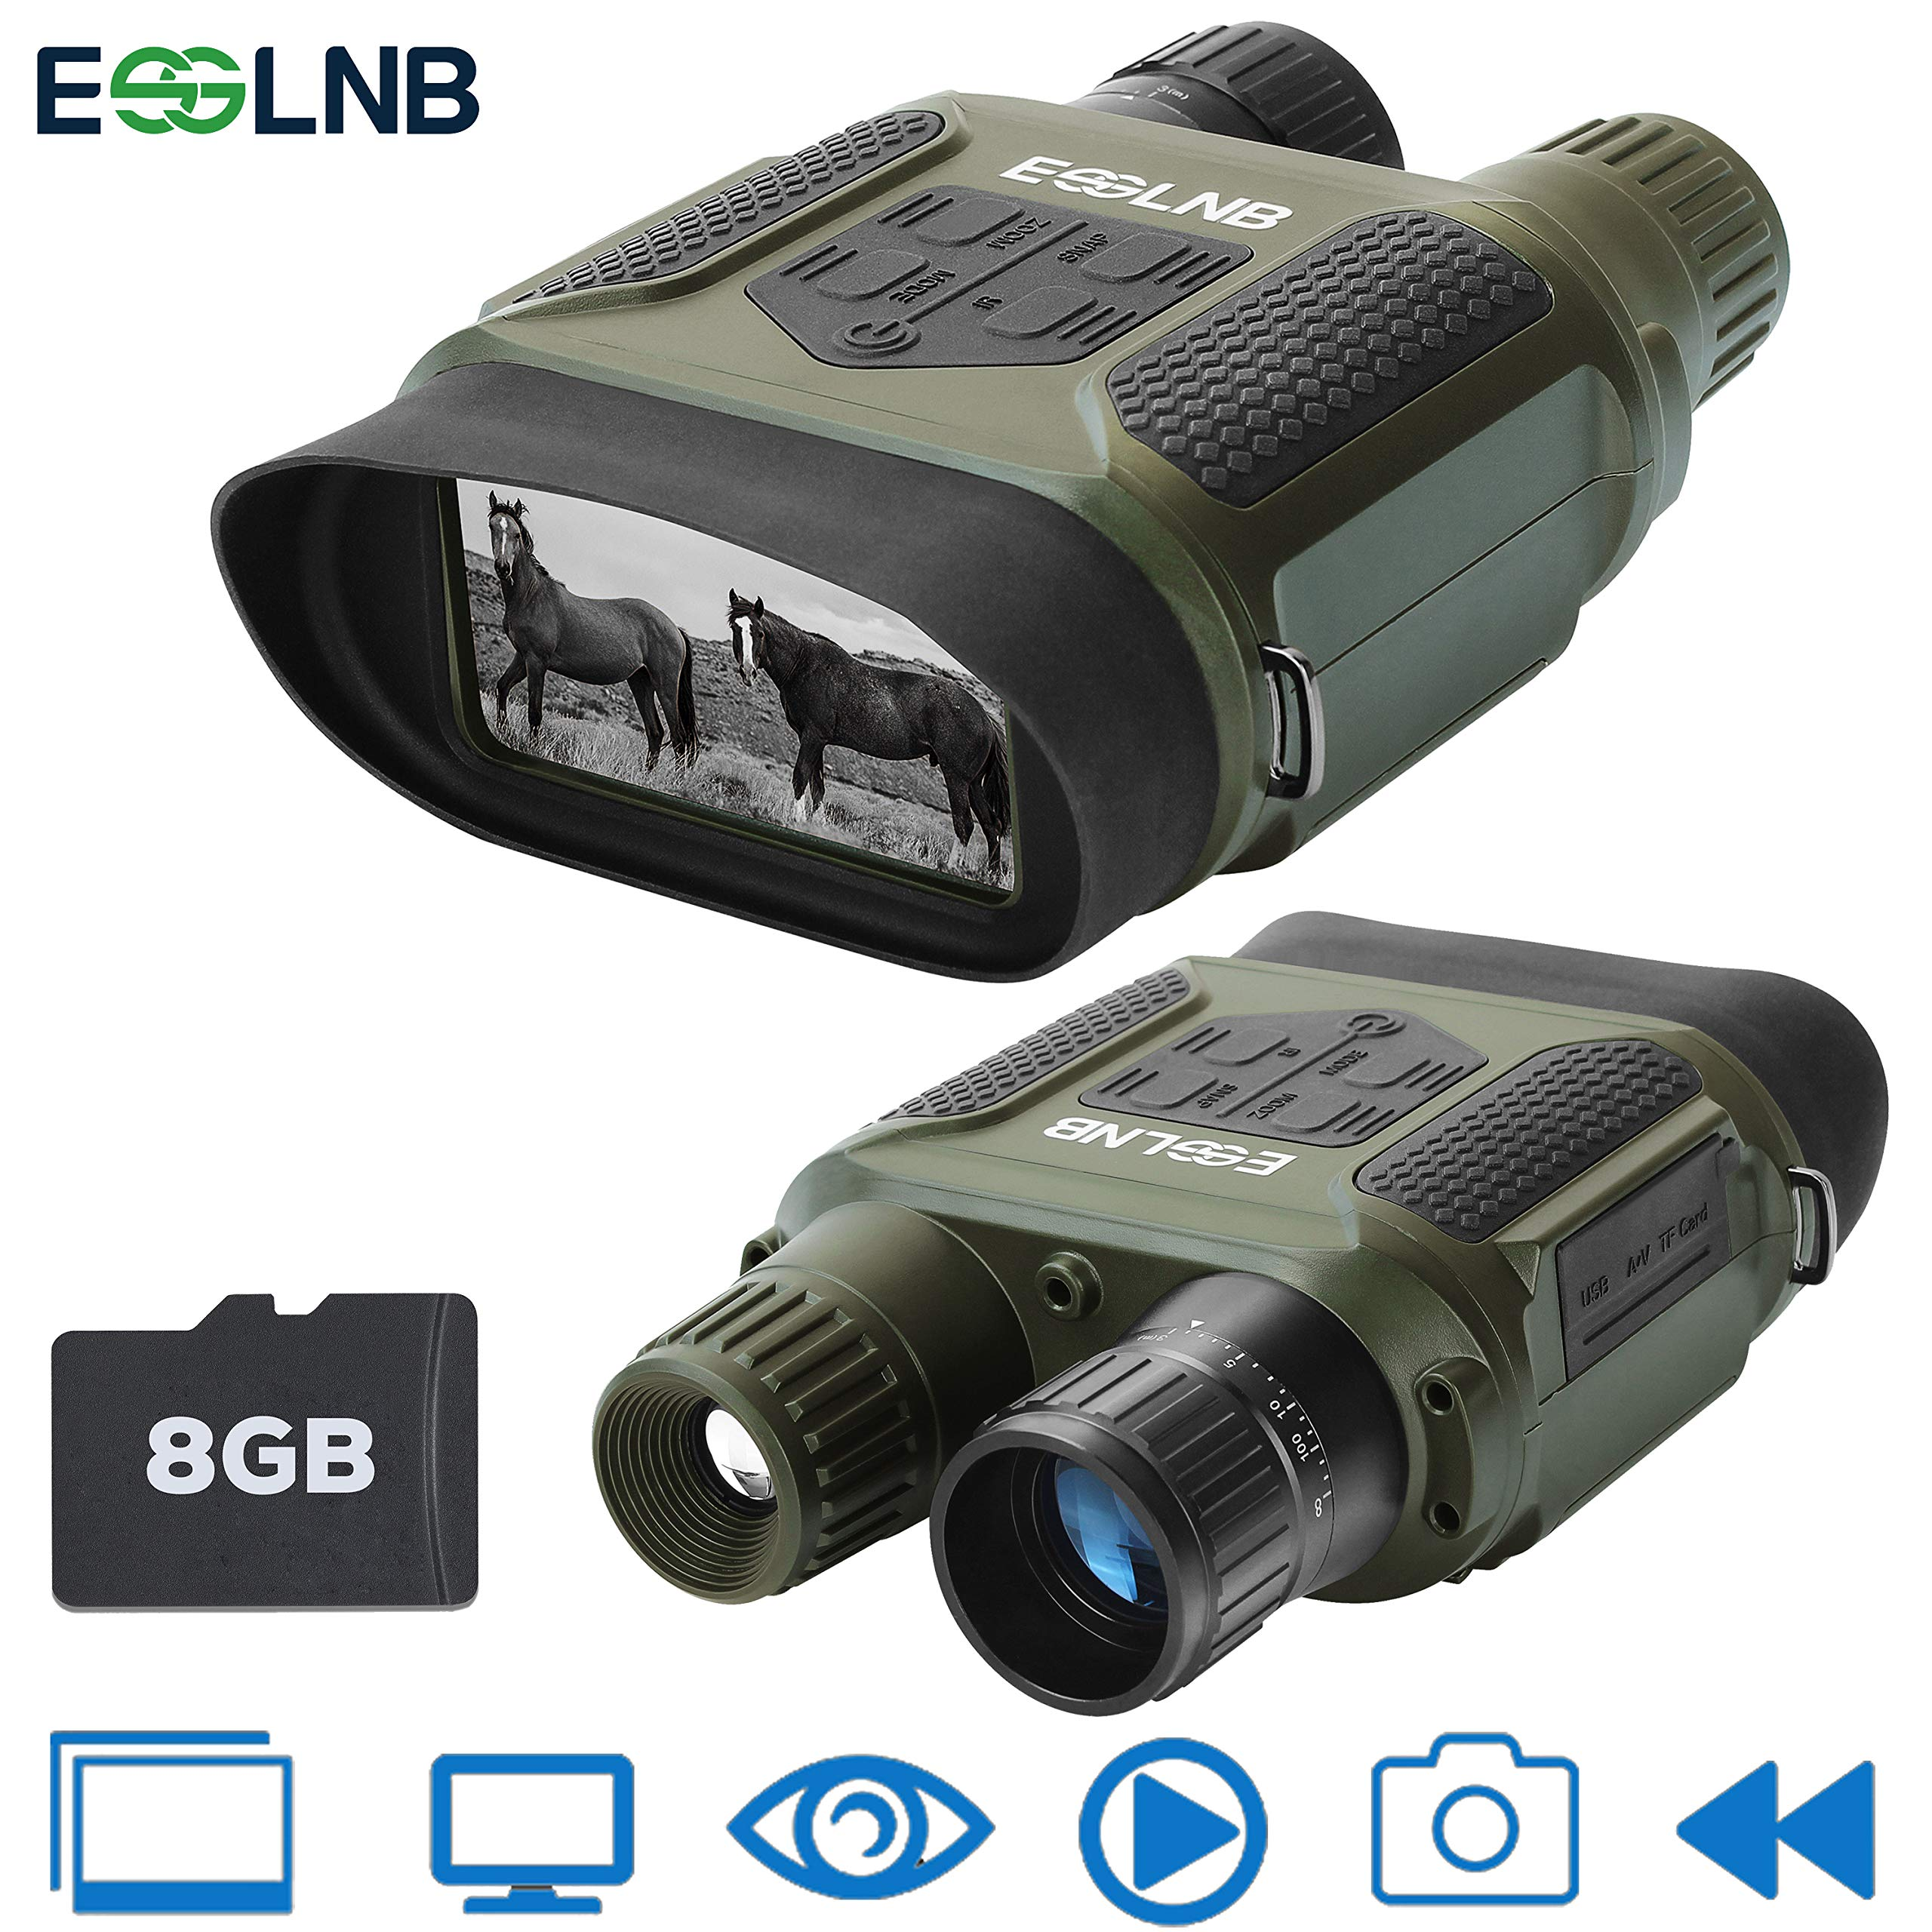 ESSLNB Night Vision Binoculars 1300ft Digital Night Vision Scope 7x31 Infrared Night Vision Hunting Binocular with 2'' TFT LCD and 8GB TF Card Photo Camera Video Recorder Playback Function